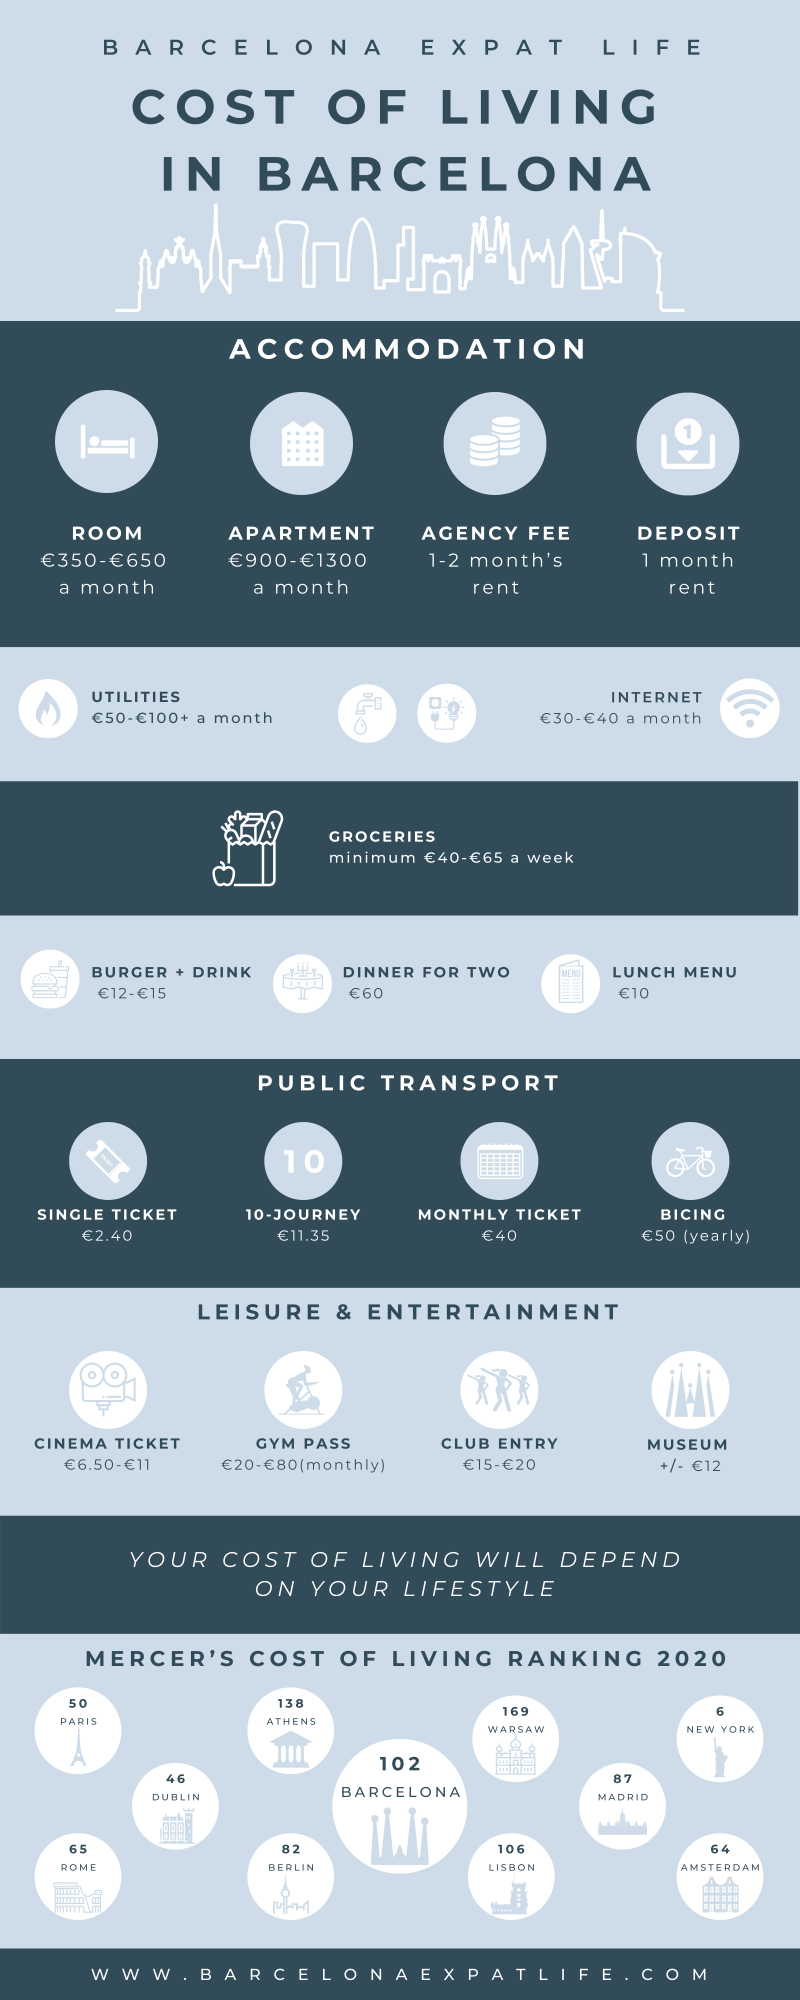 Barcelona Expat Life - cost of living infographic (2)